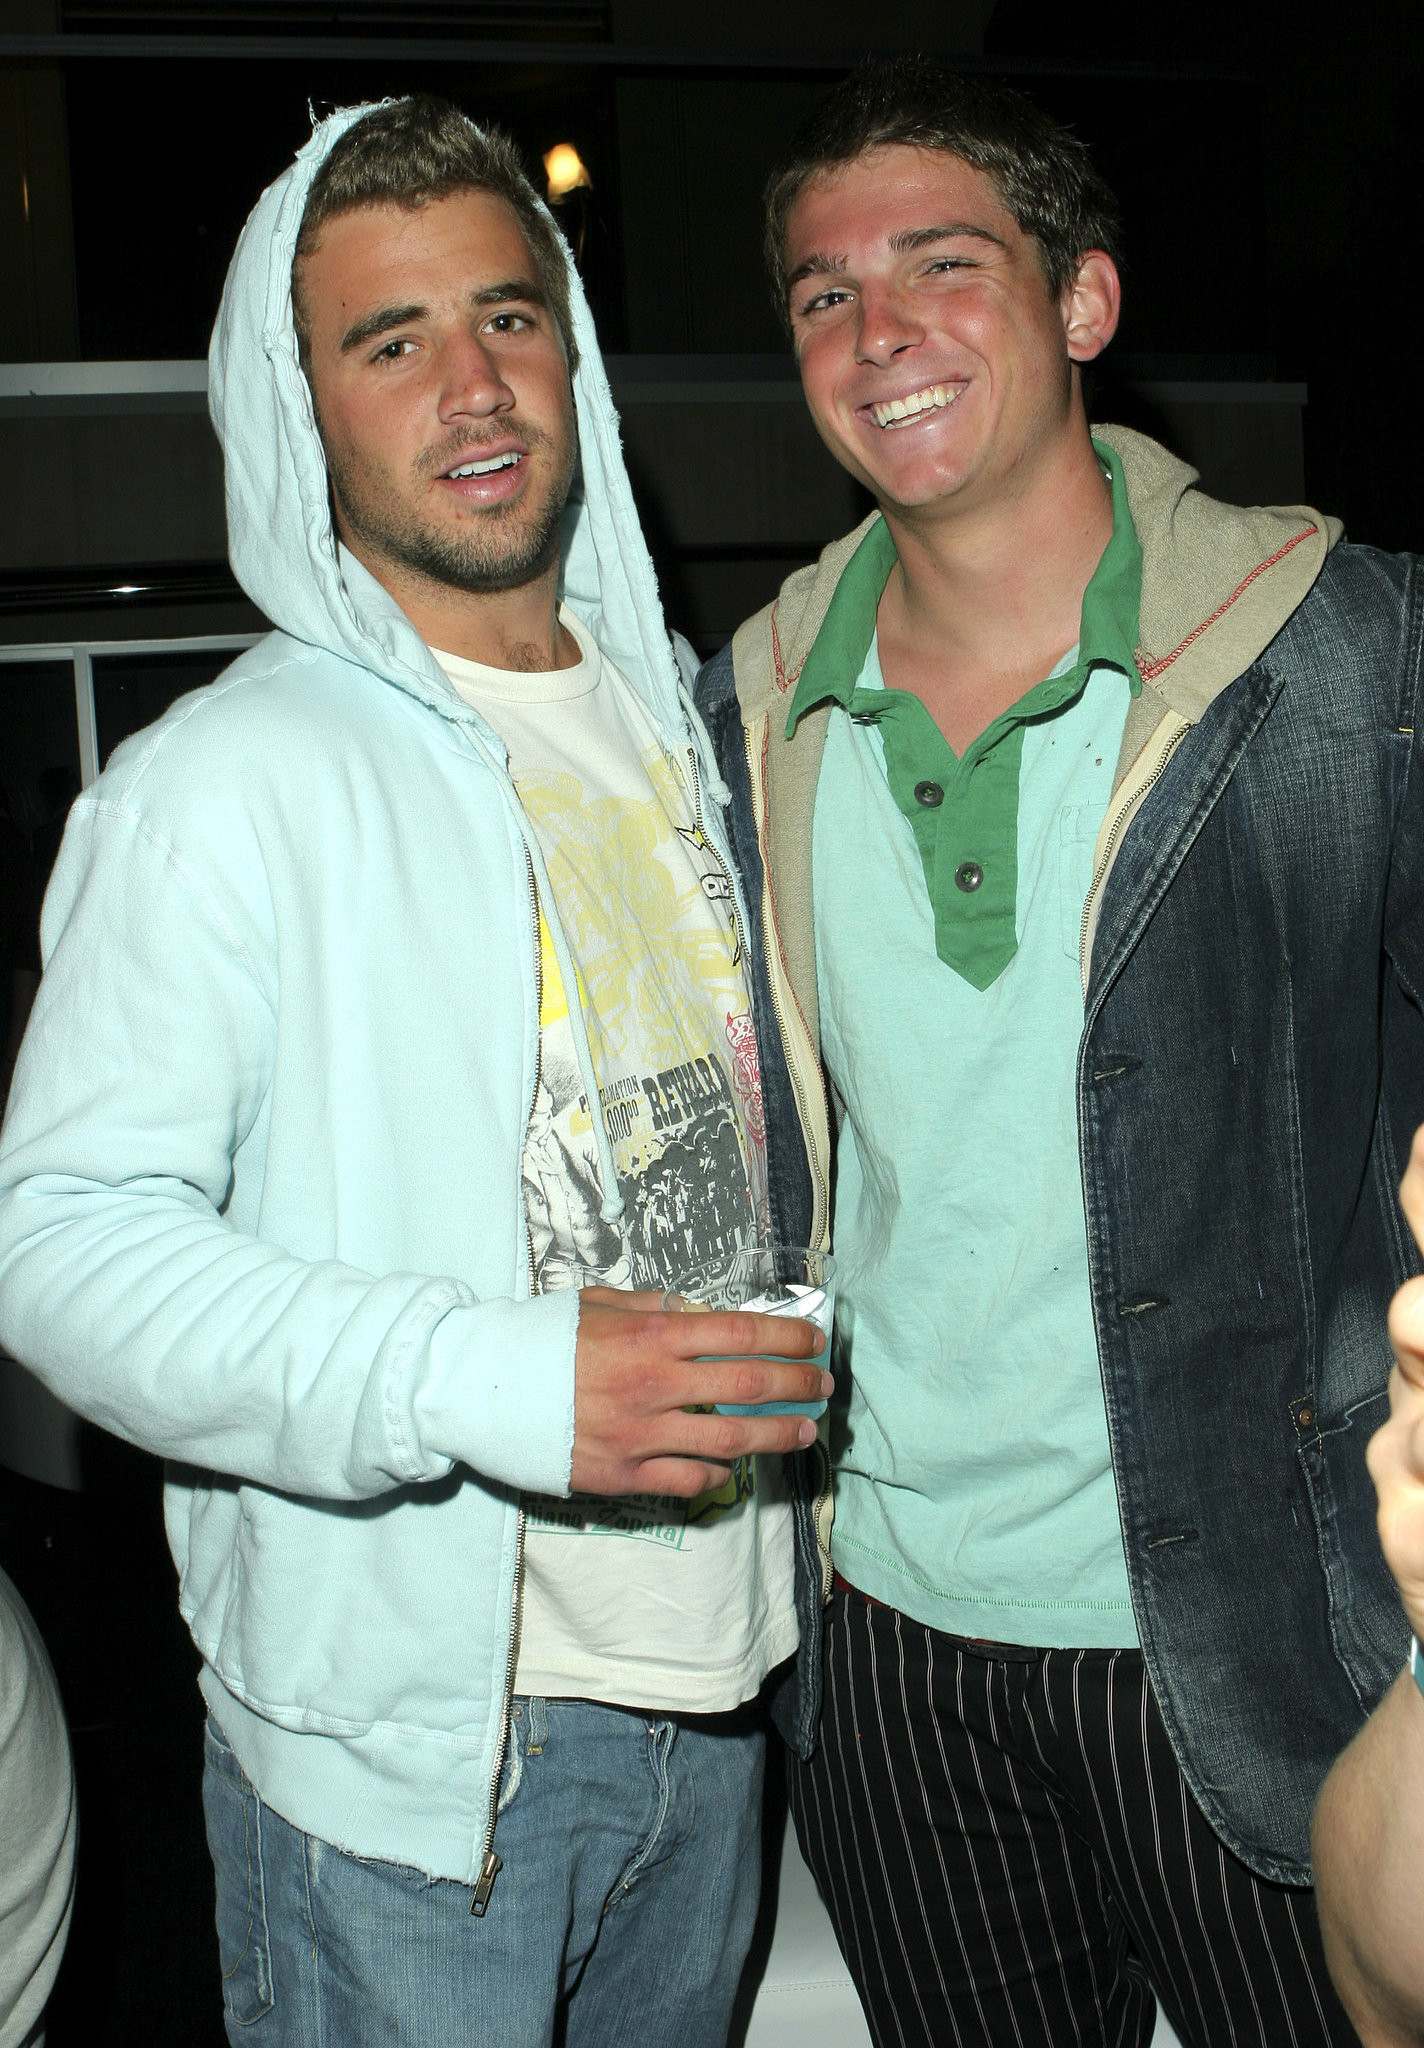 Jason Wahler and Talan Torriero partied together in LA in June 2005.